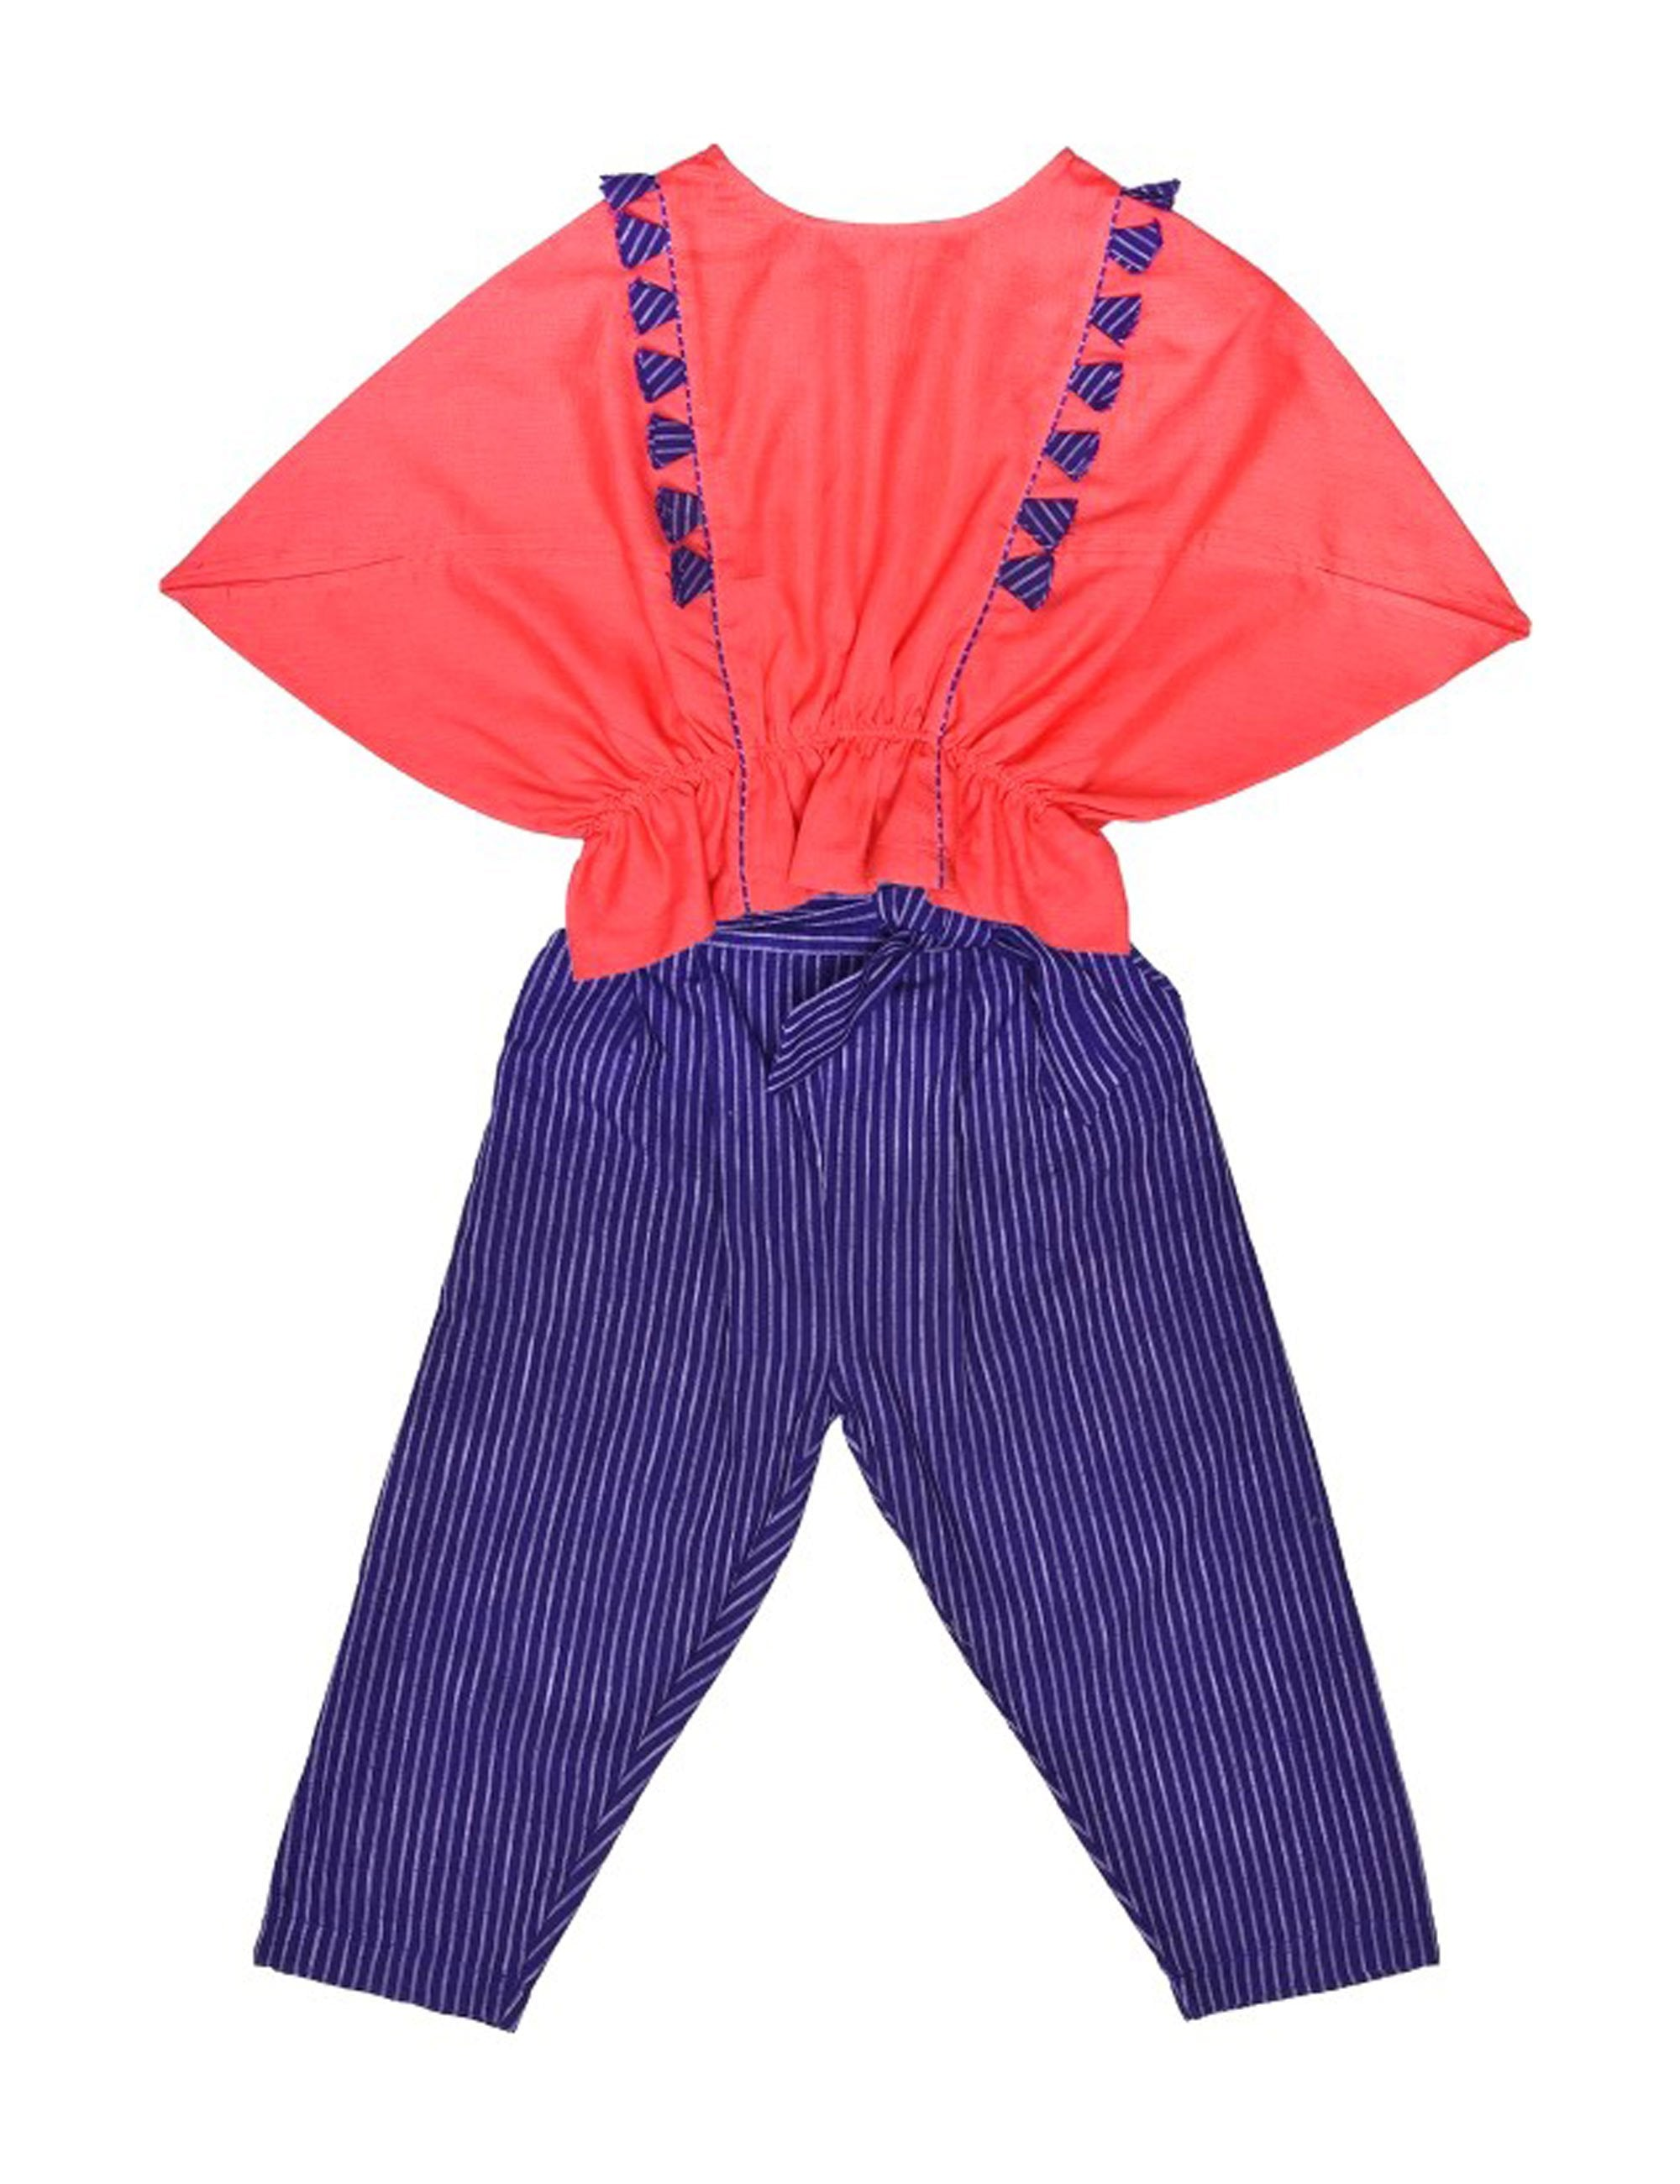 Balloon Tops with Triangular Sleeves and Striped Trouser for Girls